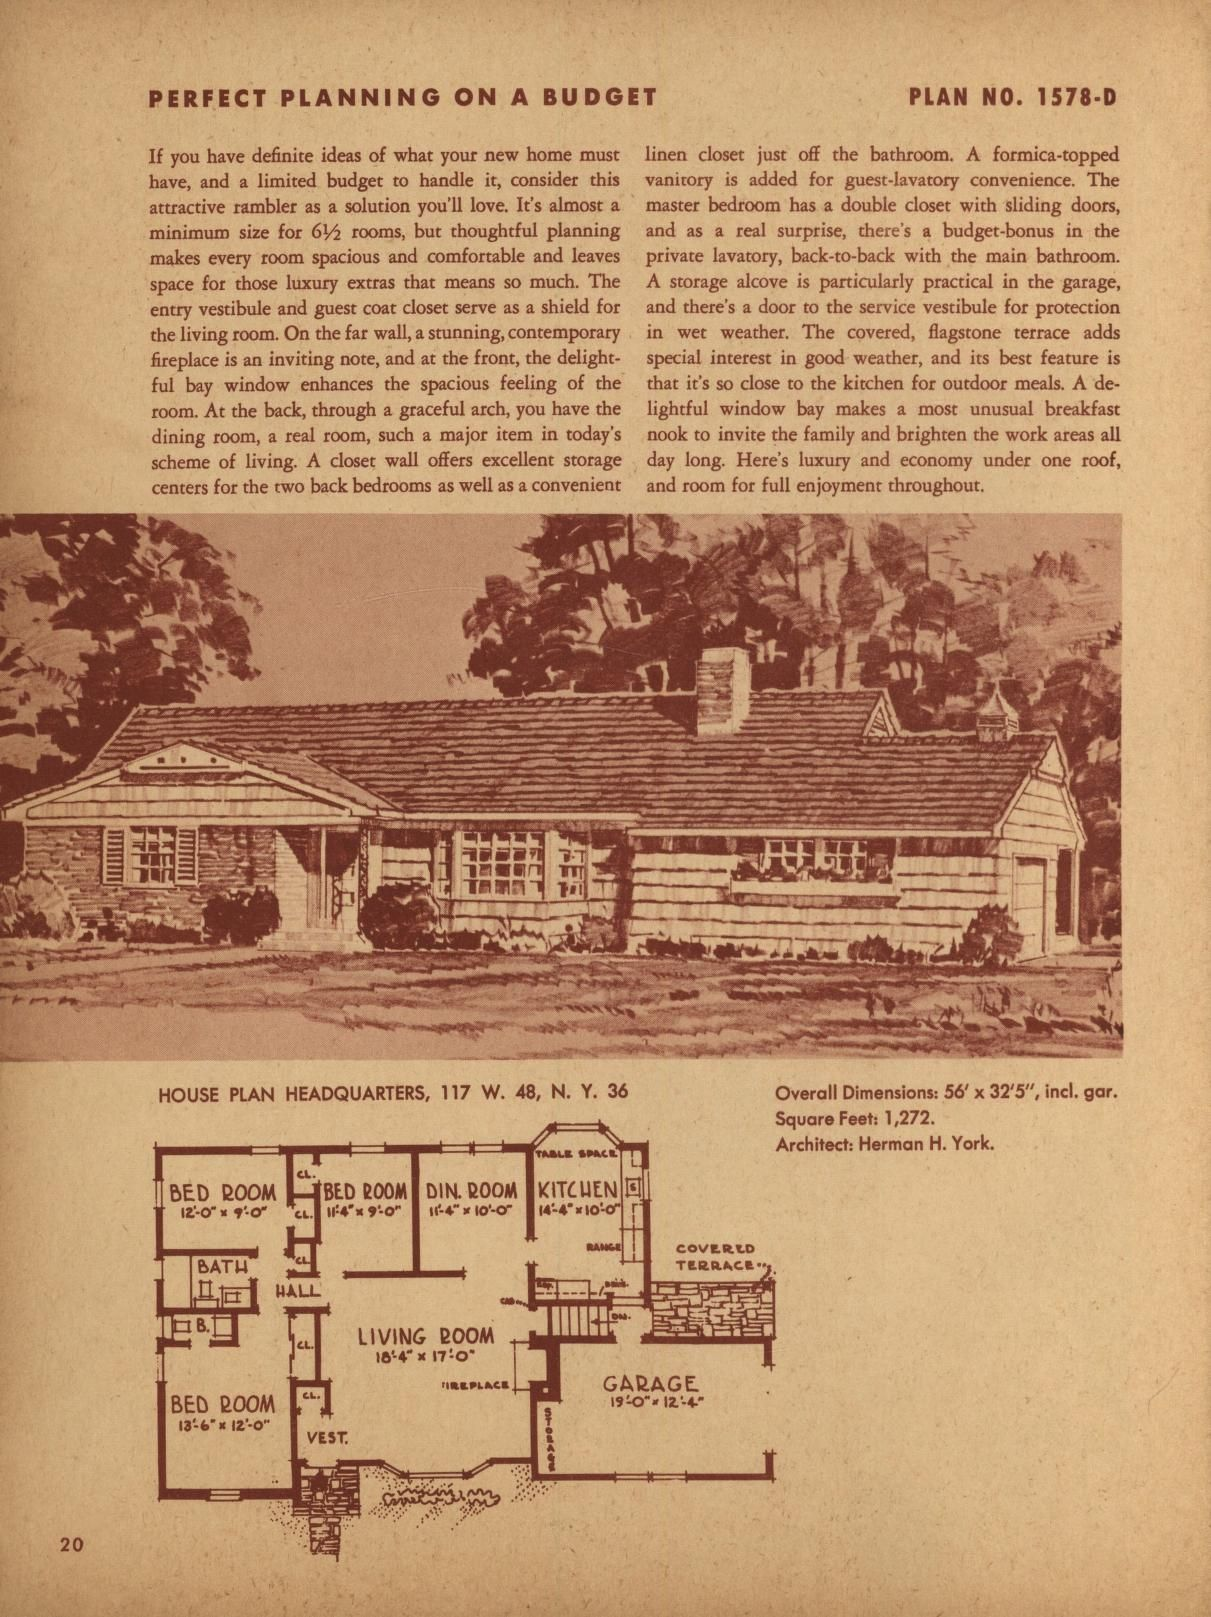 Distinctive Home Plans House Plan Headquarters Inc Free Download Borrow And Streaming Internet Archive How To Plan House Plans Budget Planning